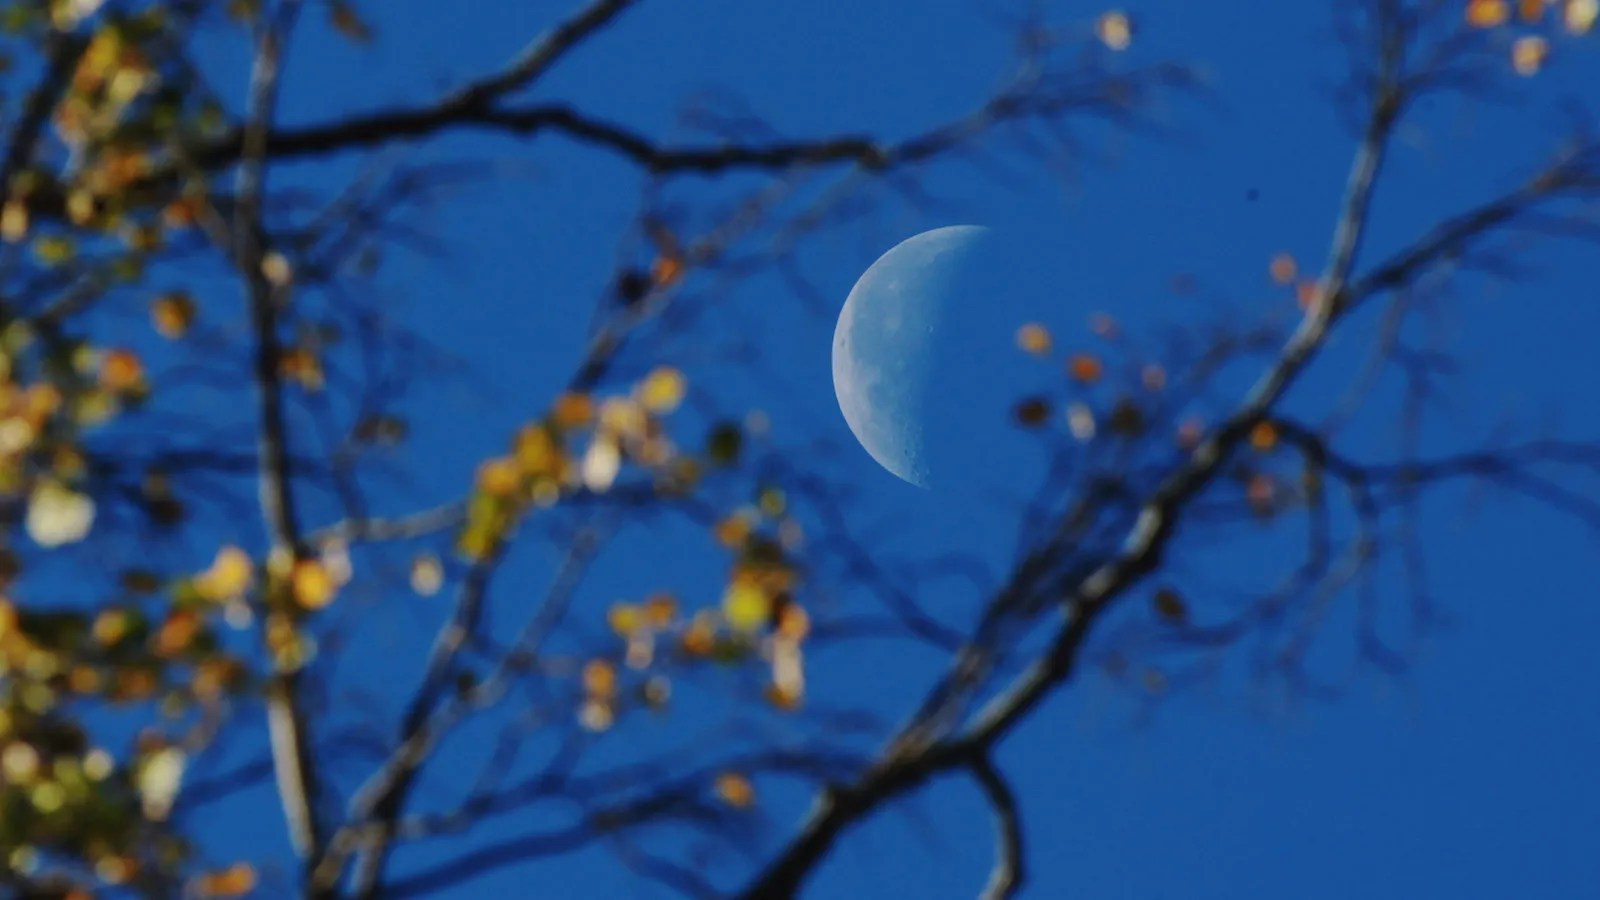 Eastern time on wednesday, october 20. March 31 is the last blue moon until Halloween 2020—so look up! - Big Think